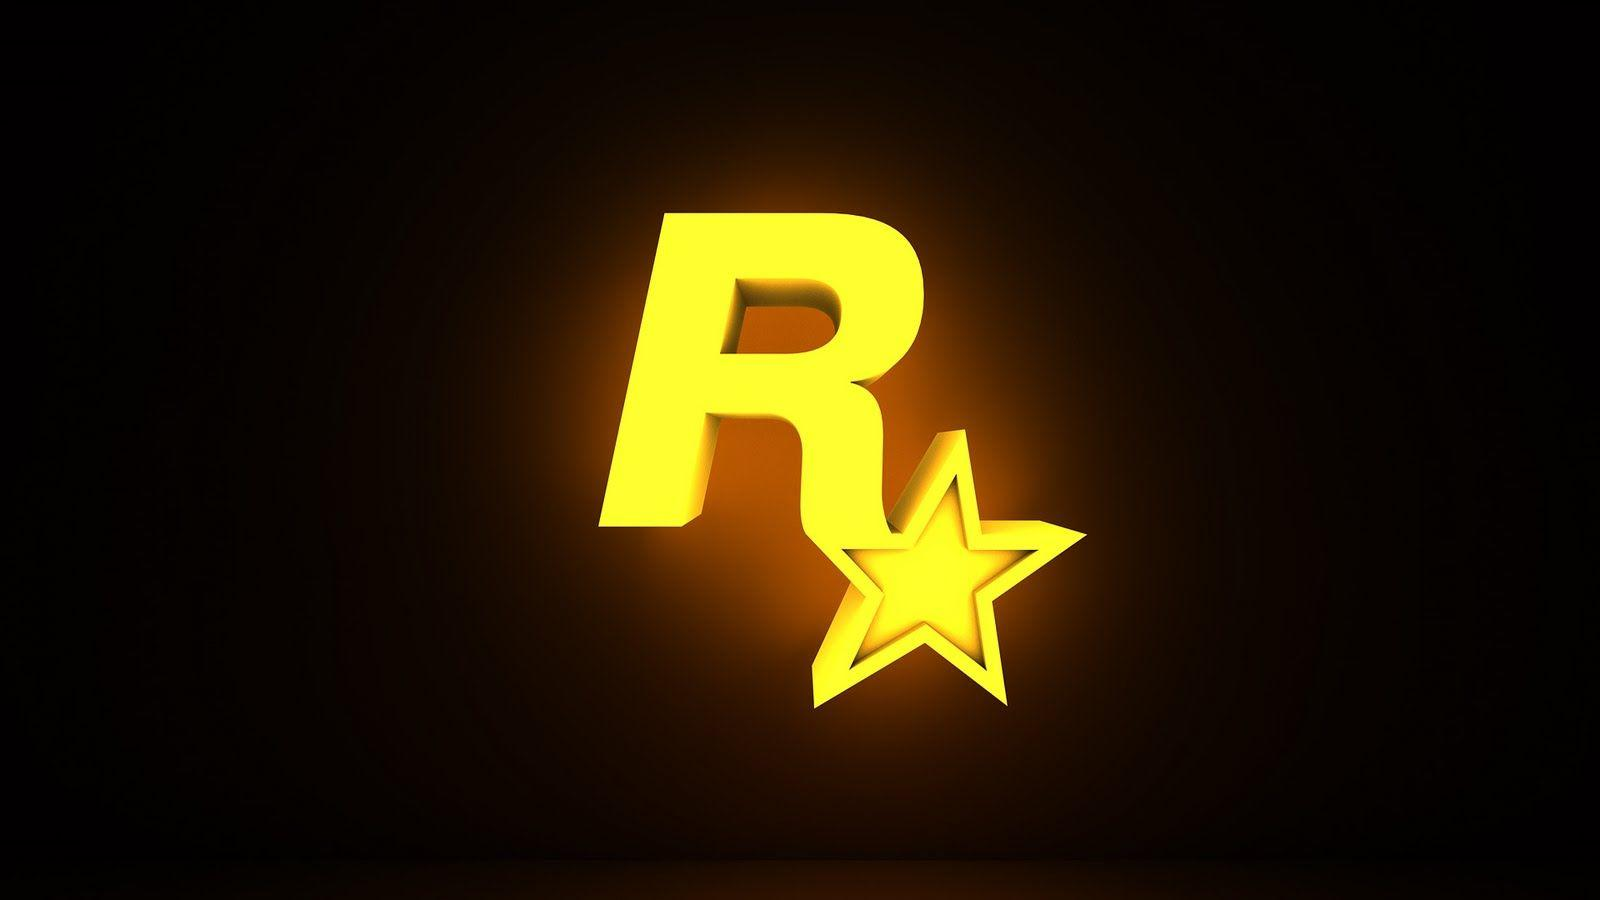 Rockstar Wallpapers - Wallpaper Cave